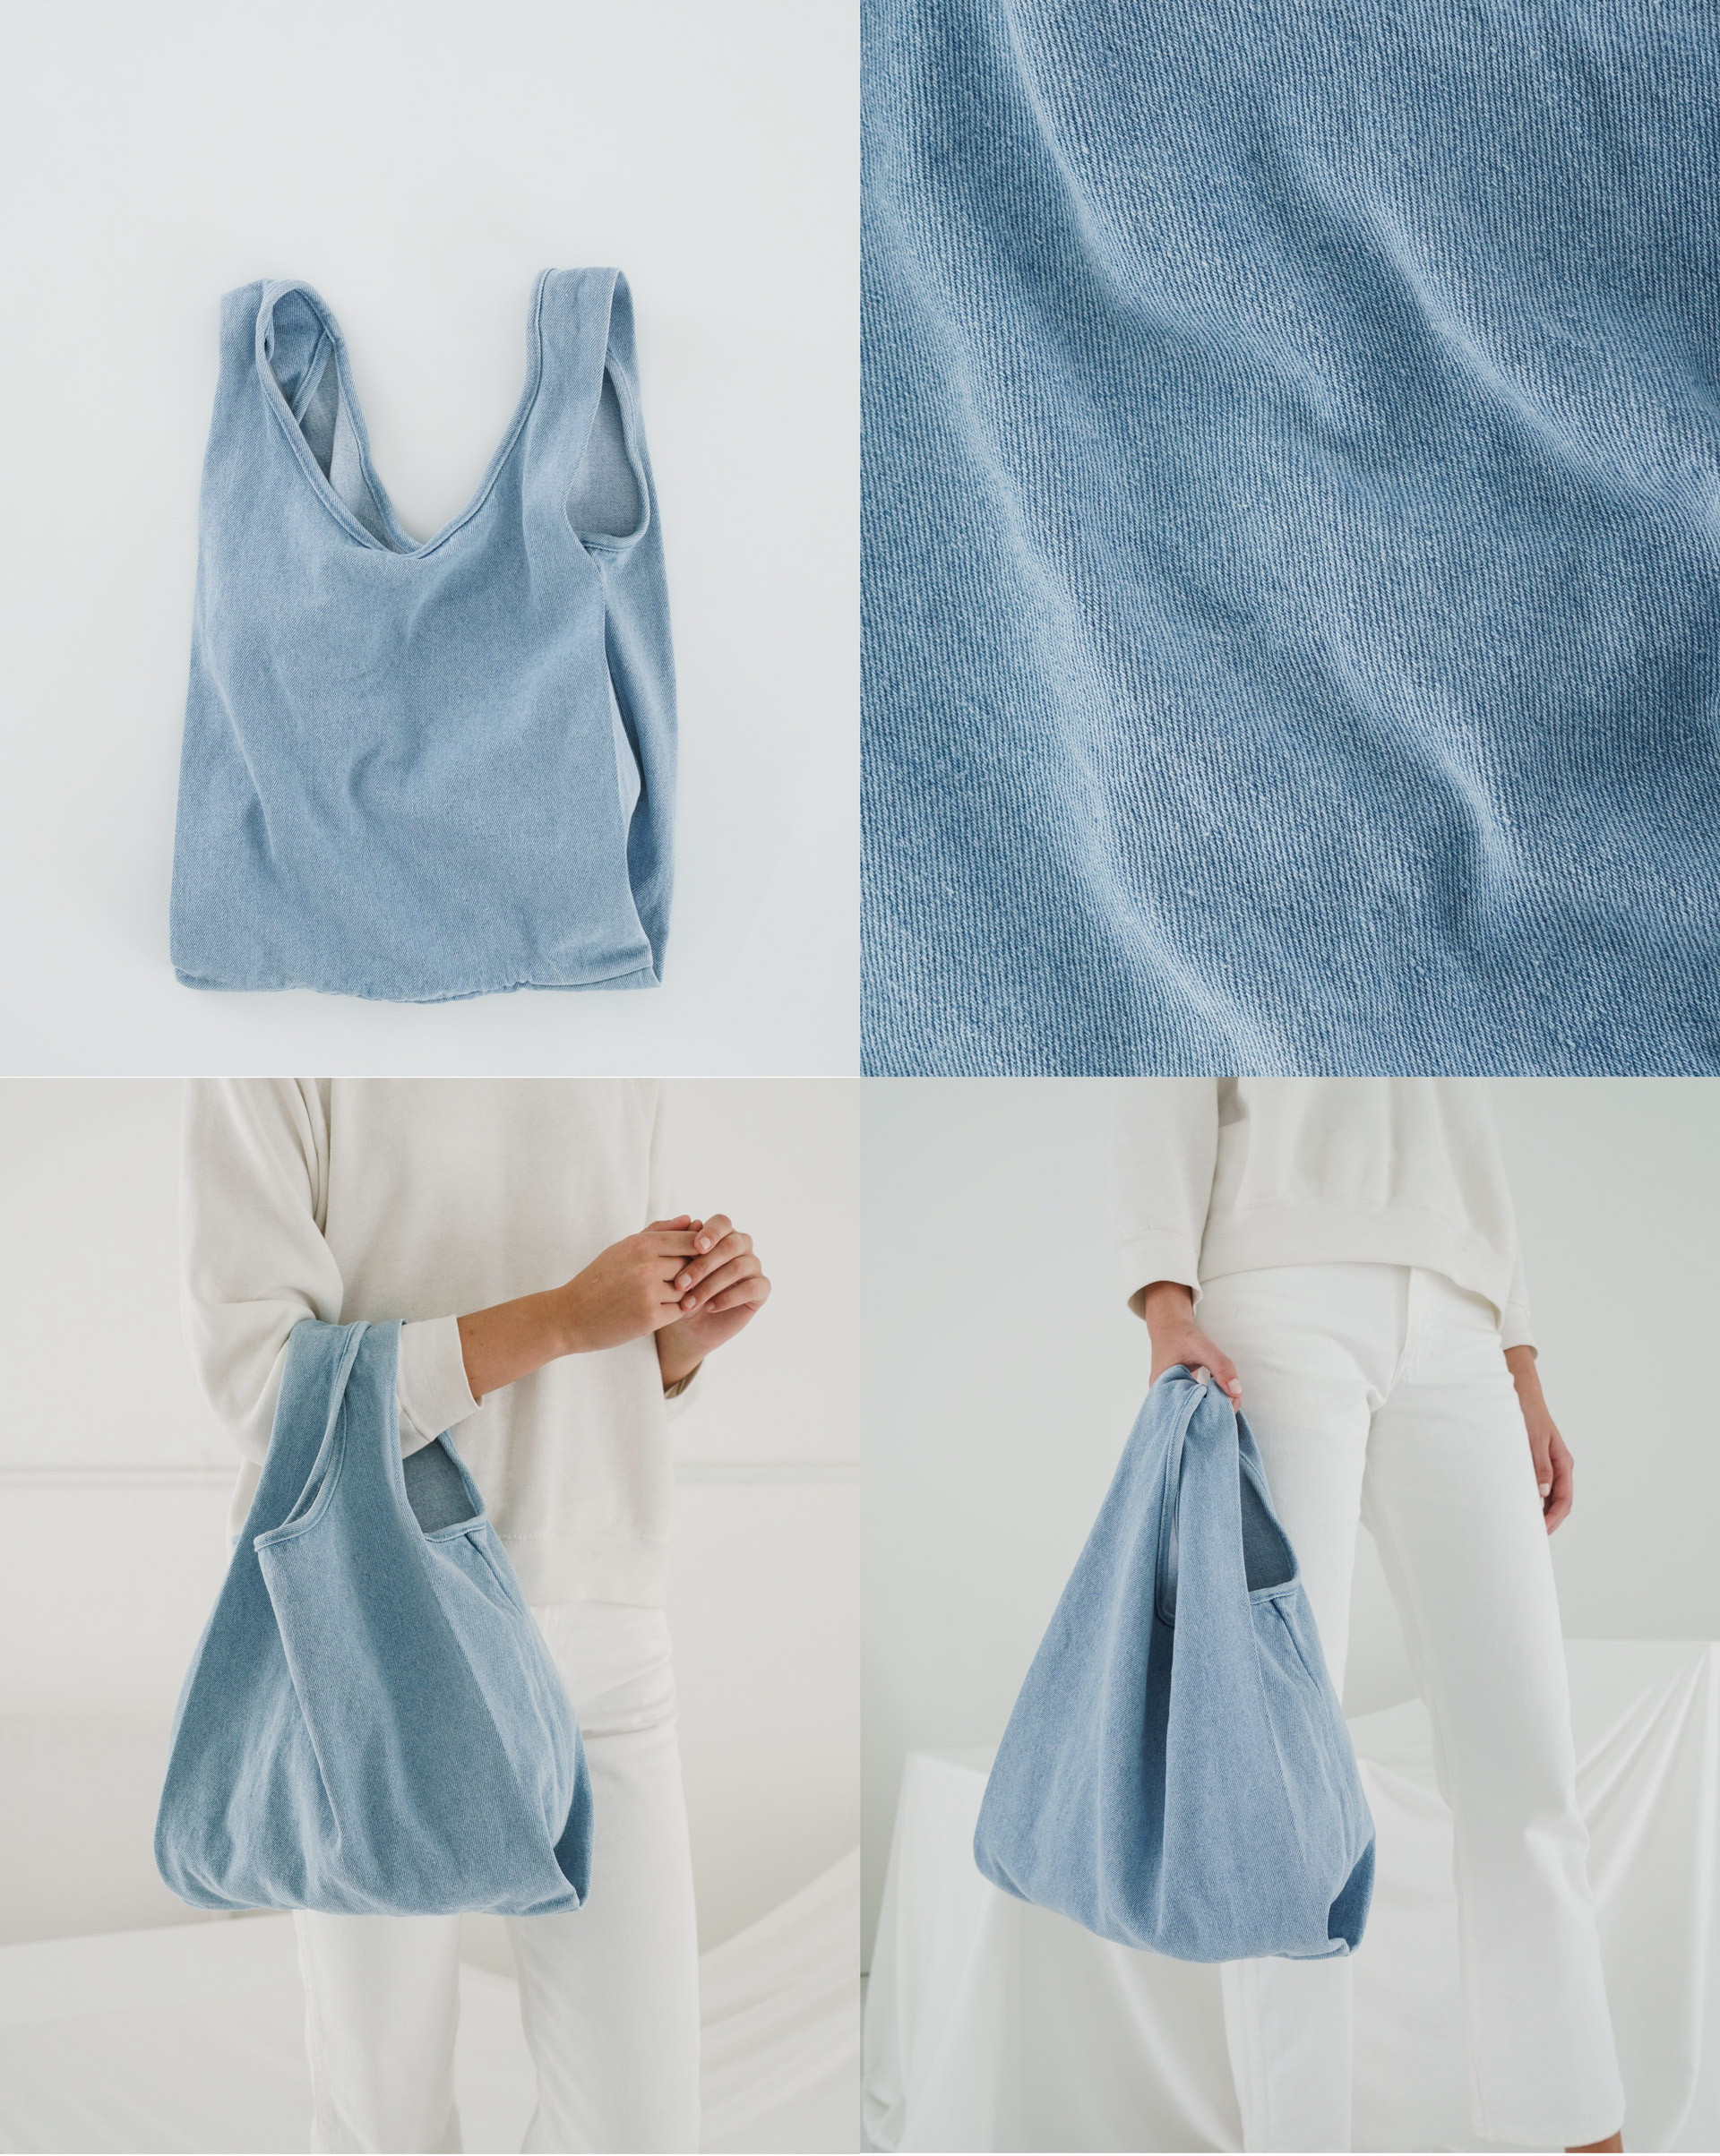 denim-medium-baggu-light-denim-2.jpg